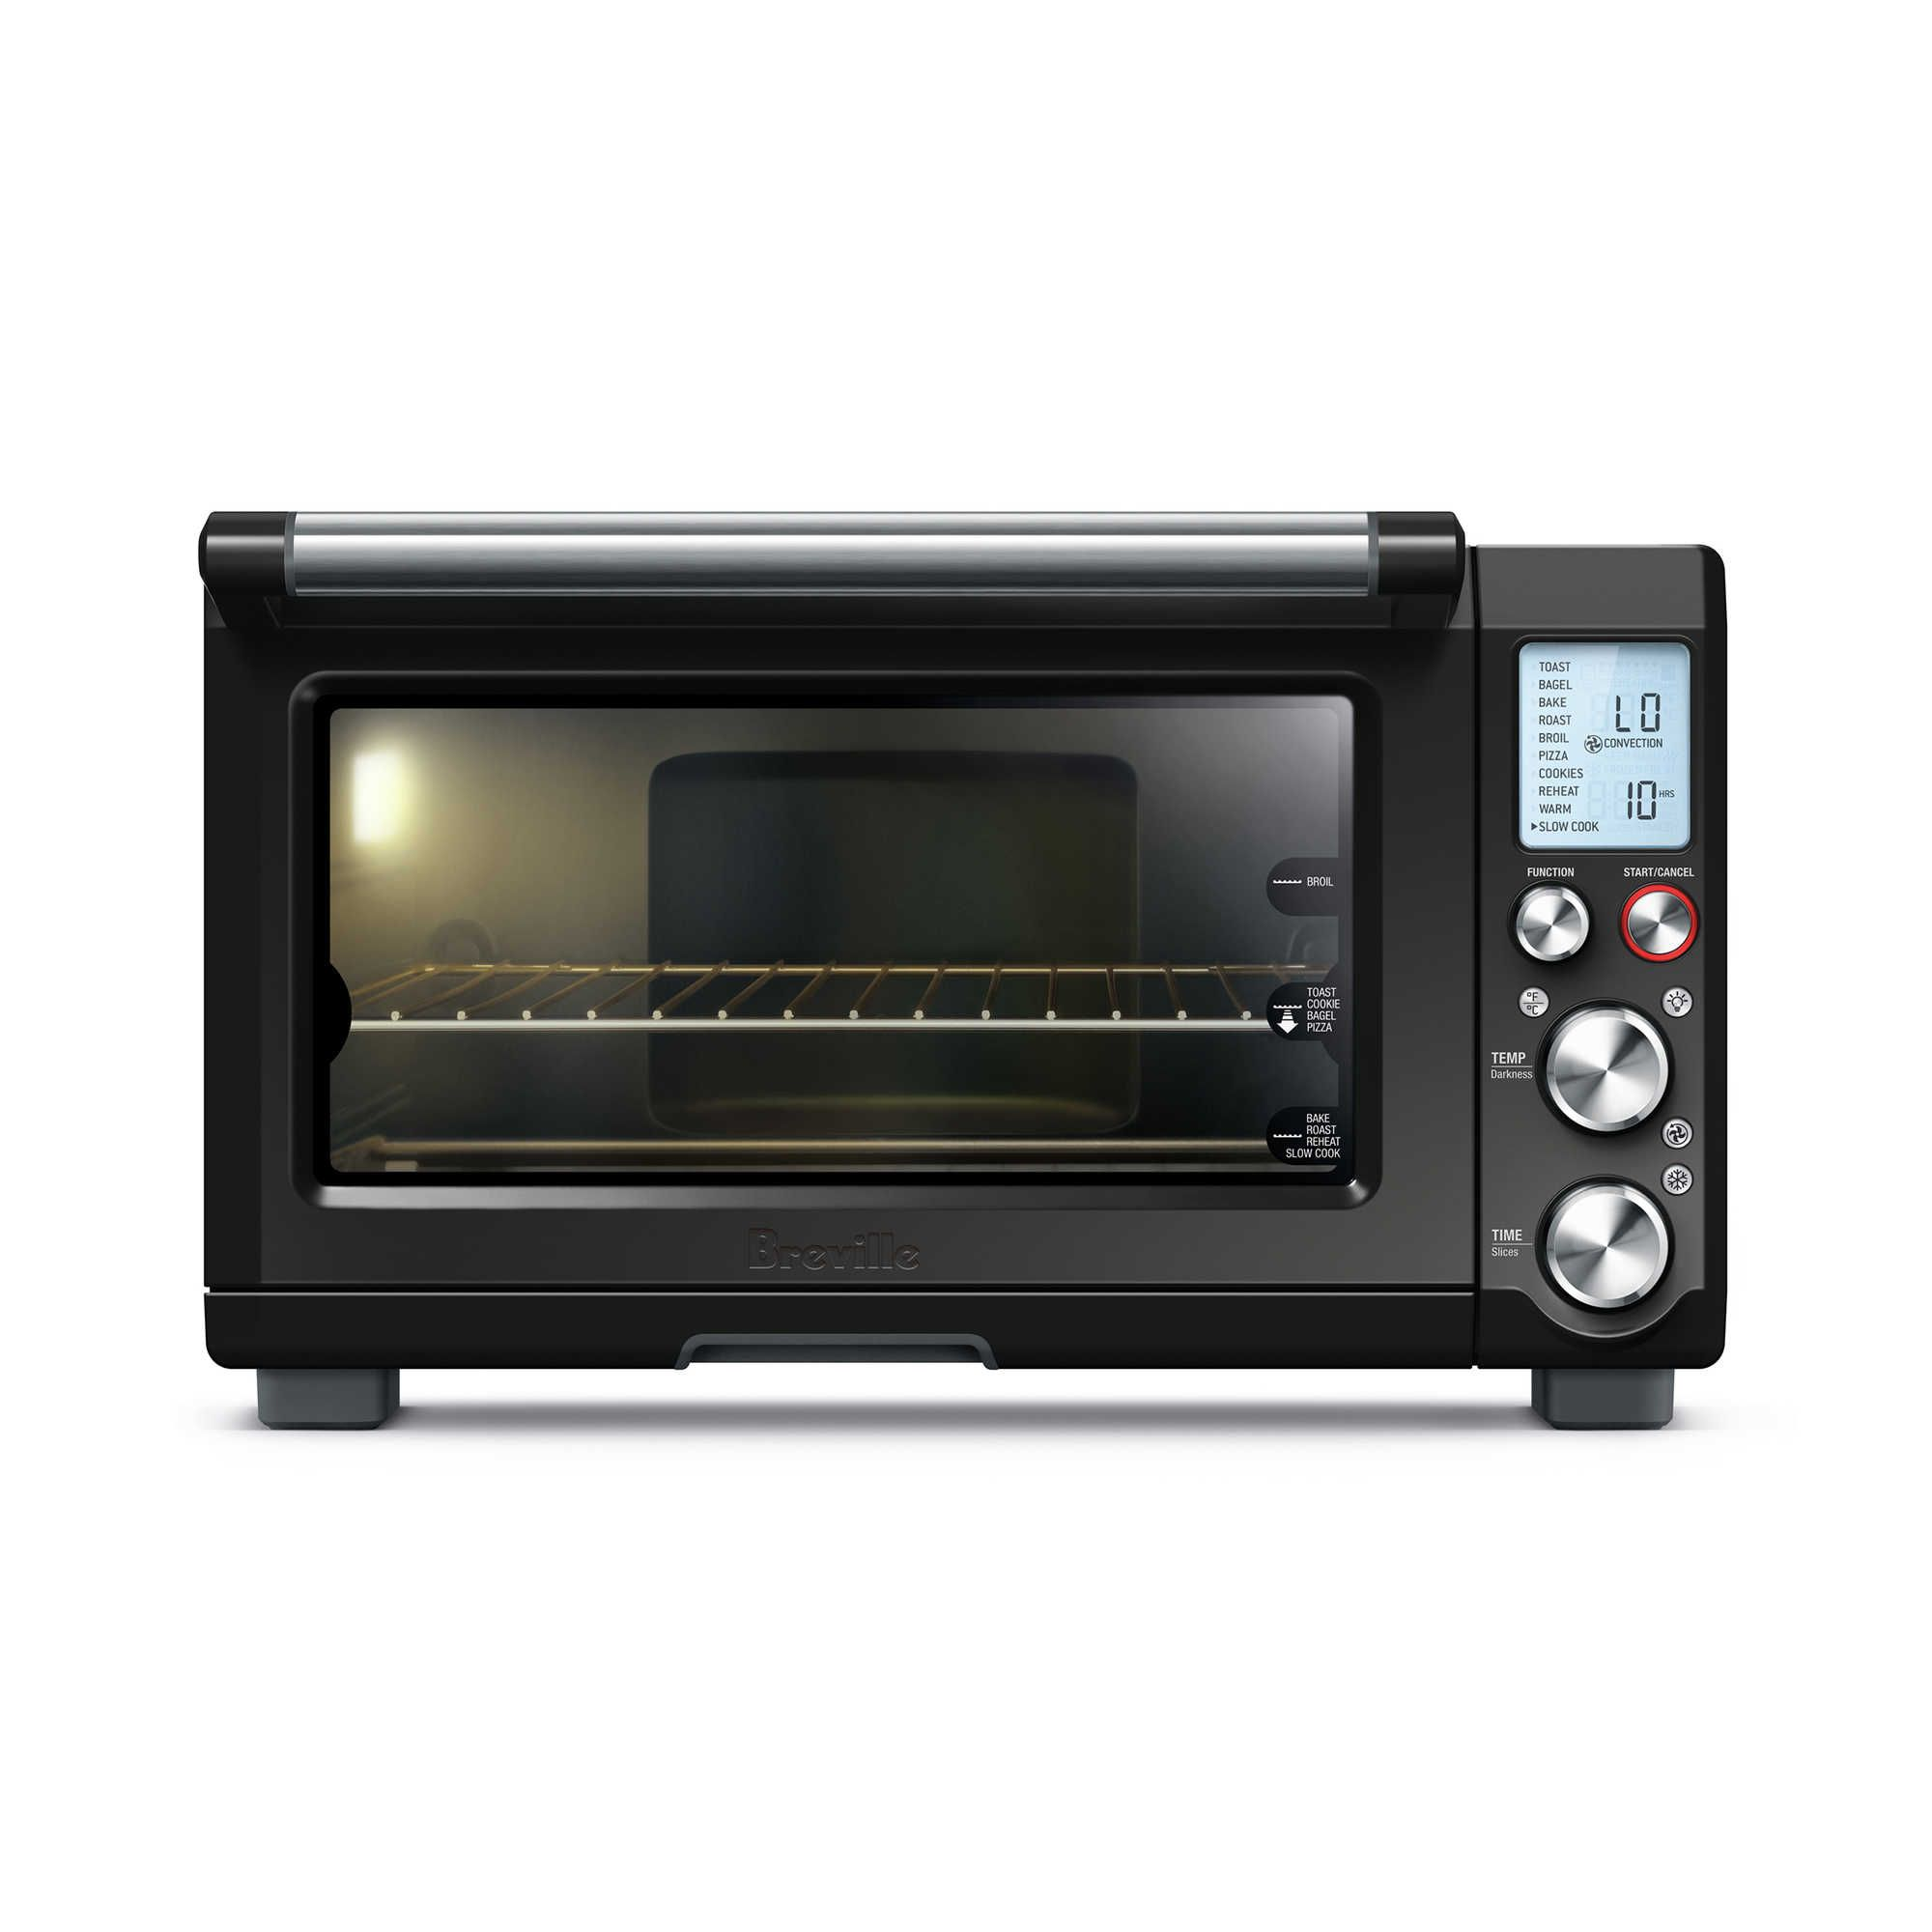 pact oven toaster luxury breville of ovens convection astonishing sunroom compact smart the